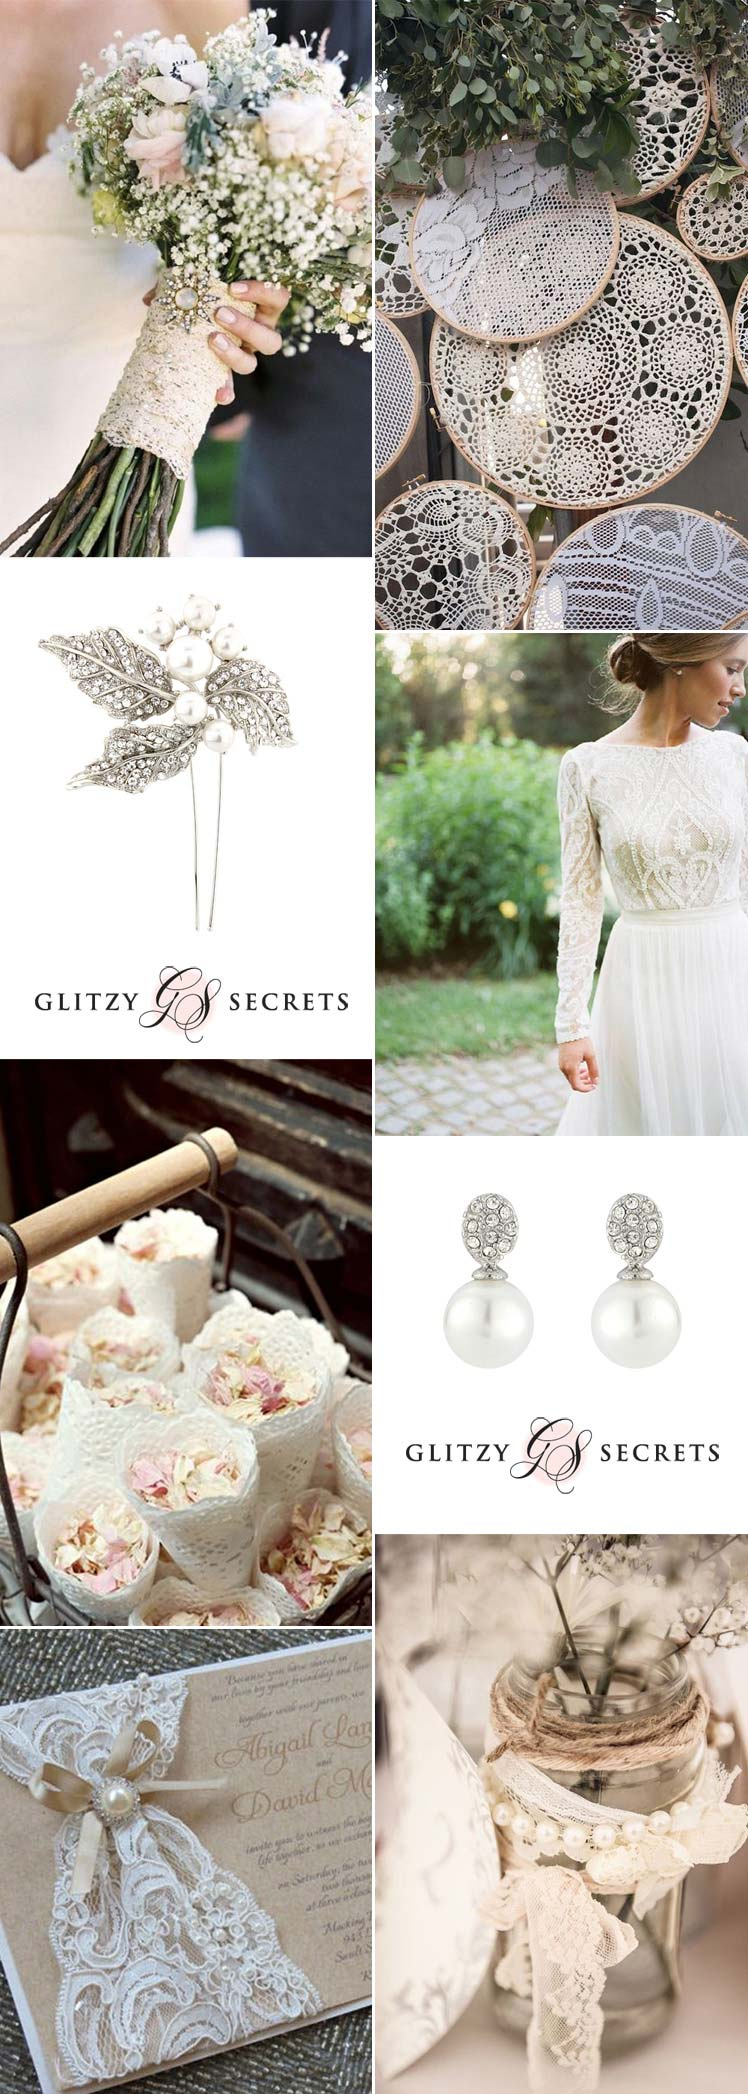 elegant lace and pearl wedding ideas